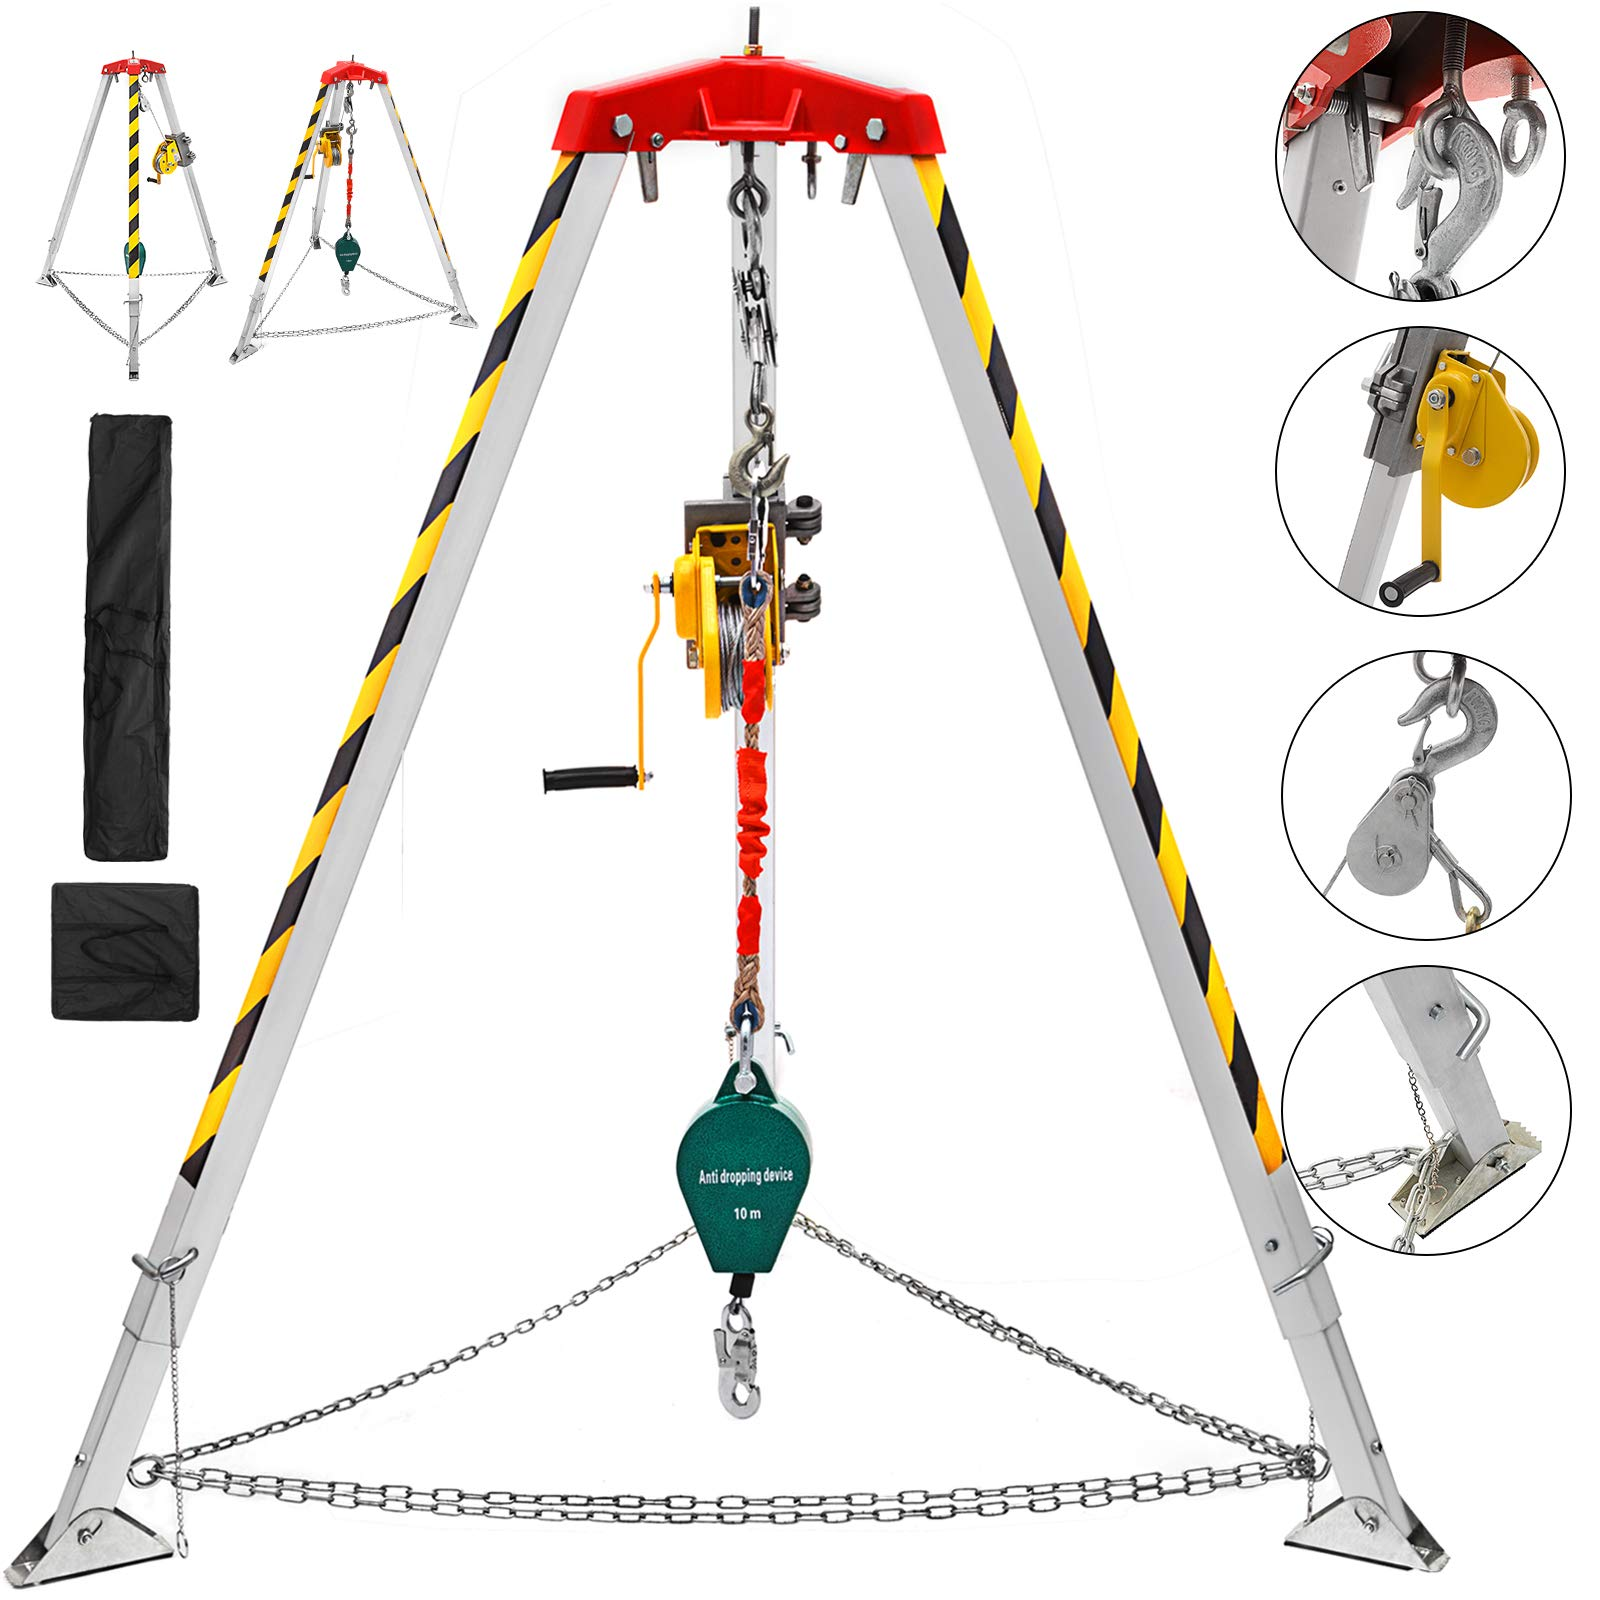 Mophorn Confined Space Kit with 7' Aluminum Tripod 65' Winch 33' Falling Protector and Storage Bags Rescue Tripod Confined Space Kit for Confined Space Rescue (Tripod Kit with Falling Protector)